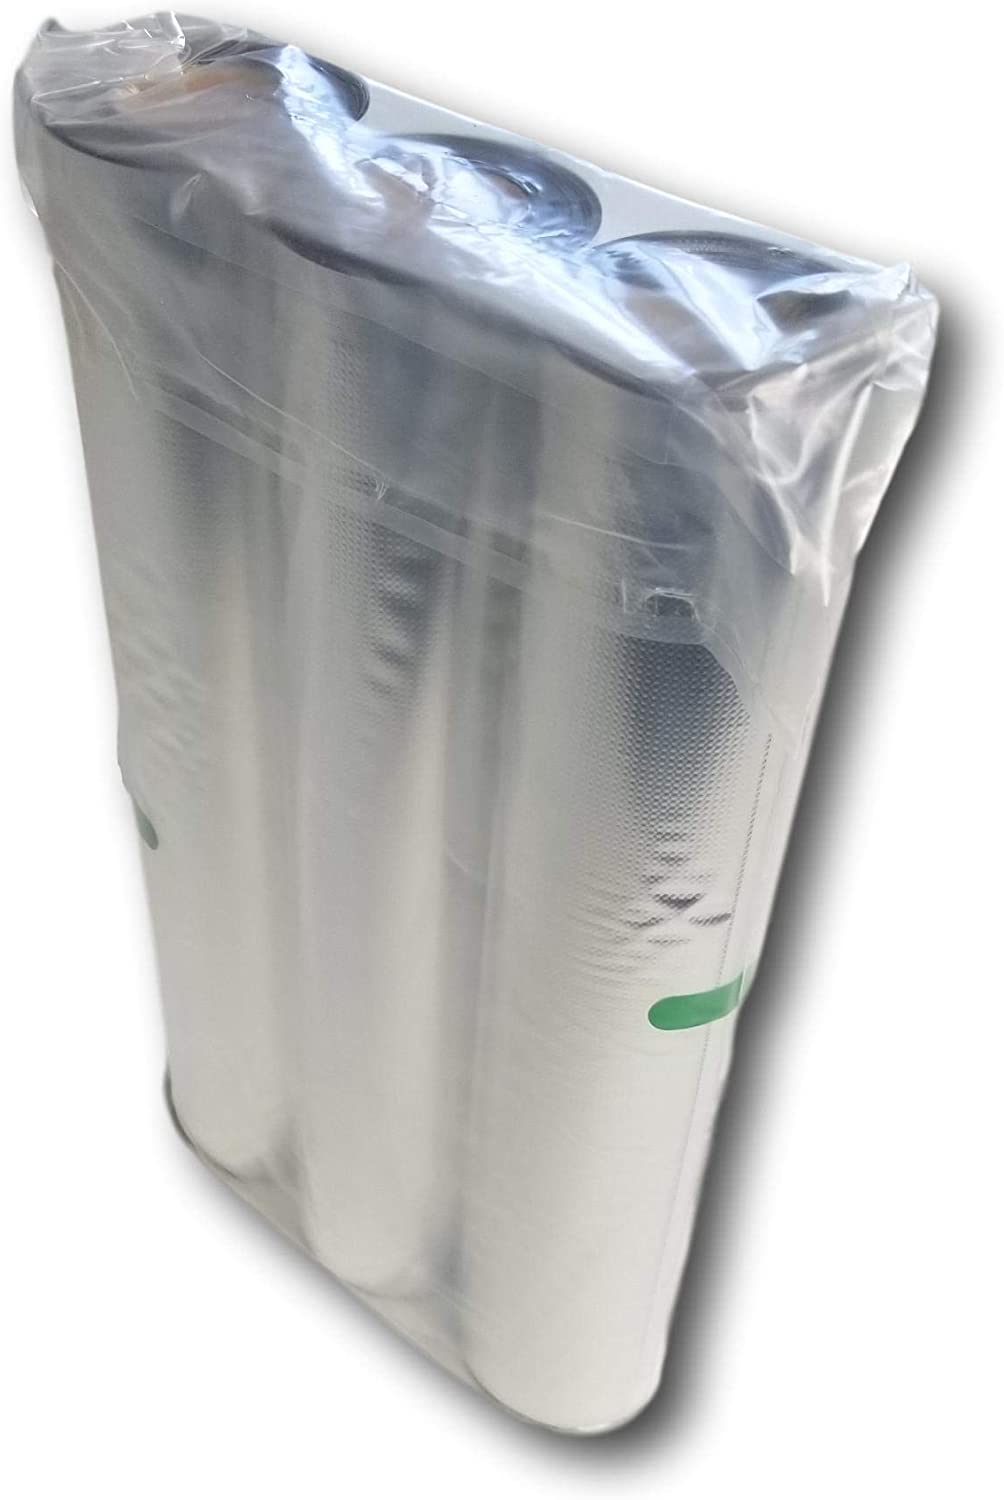 "Mylar Vacuum Seal 8""x16' or 11""x16' Rolls 